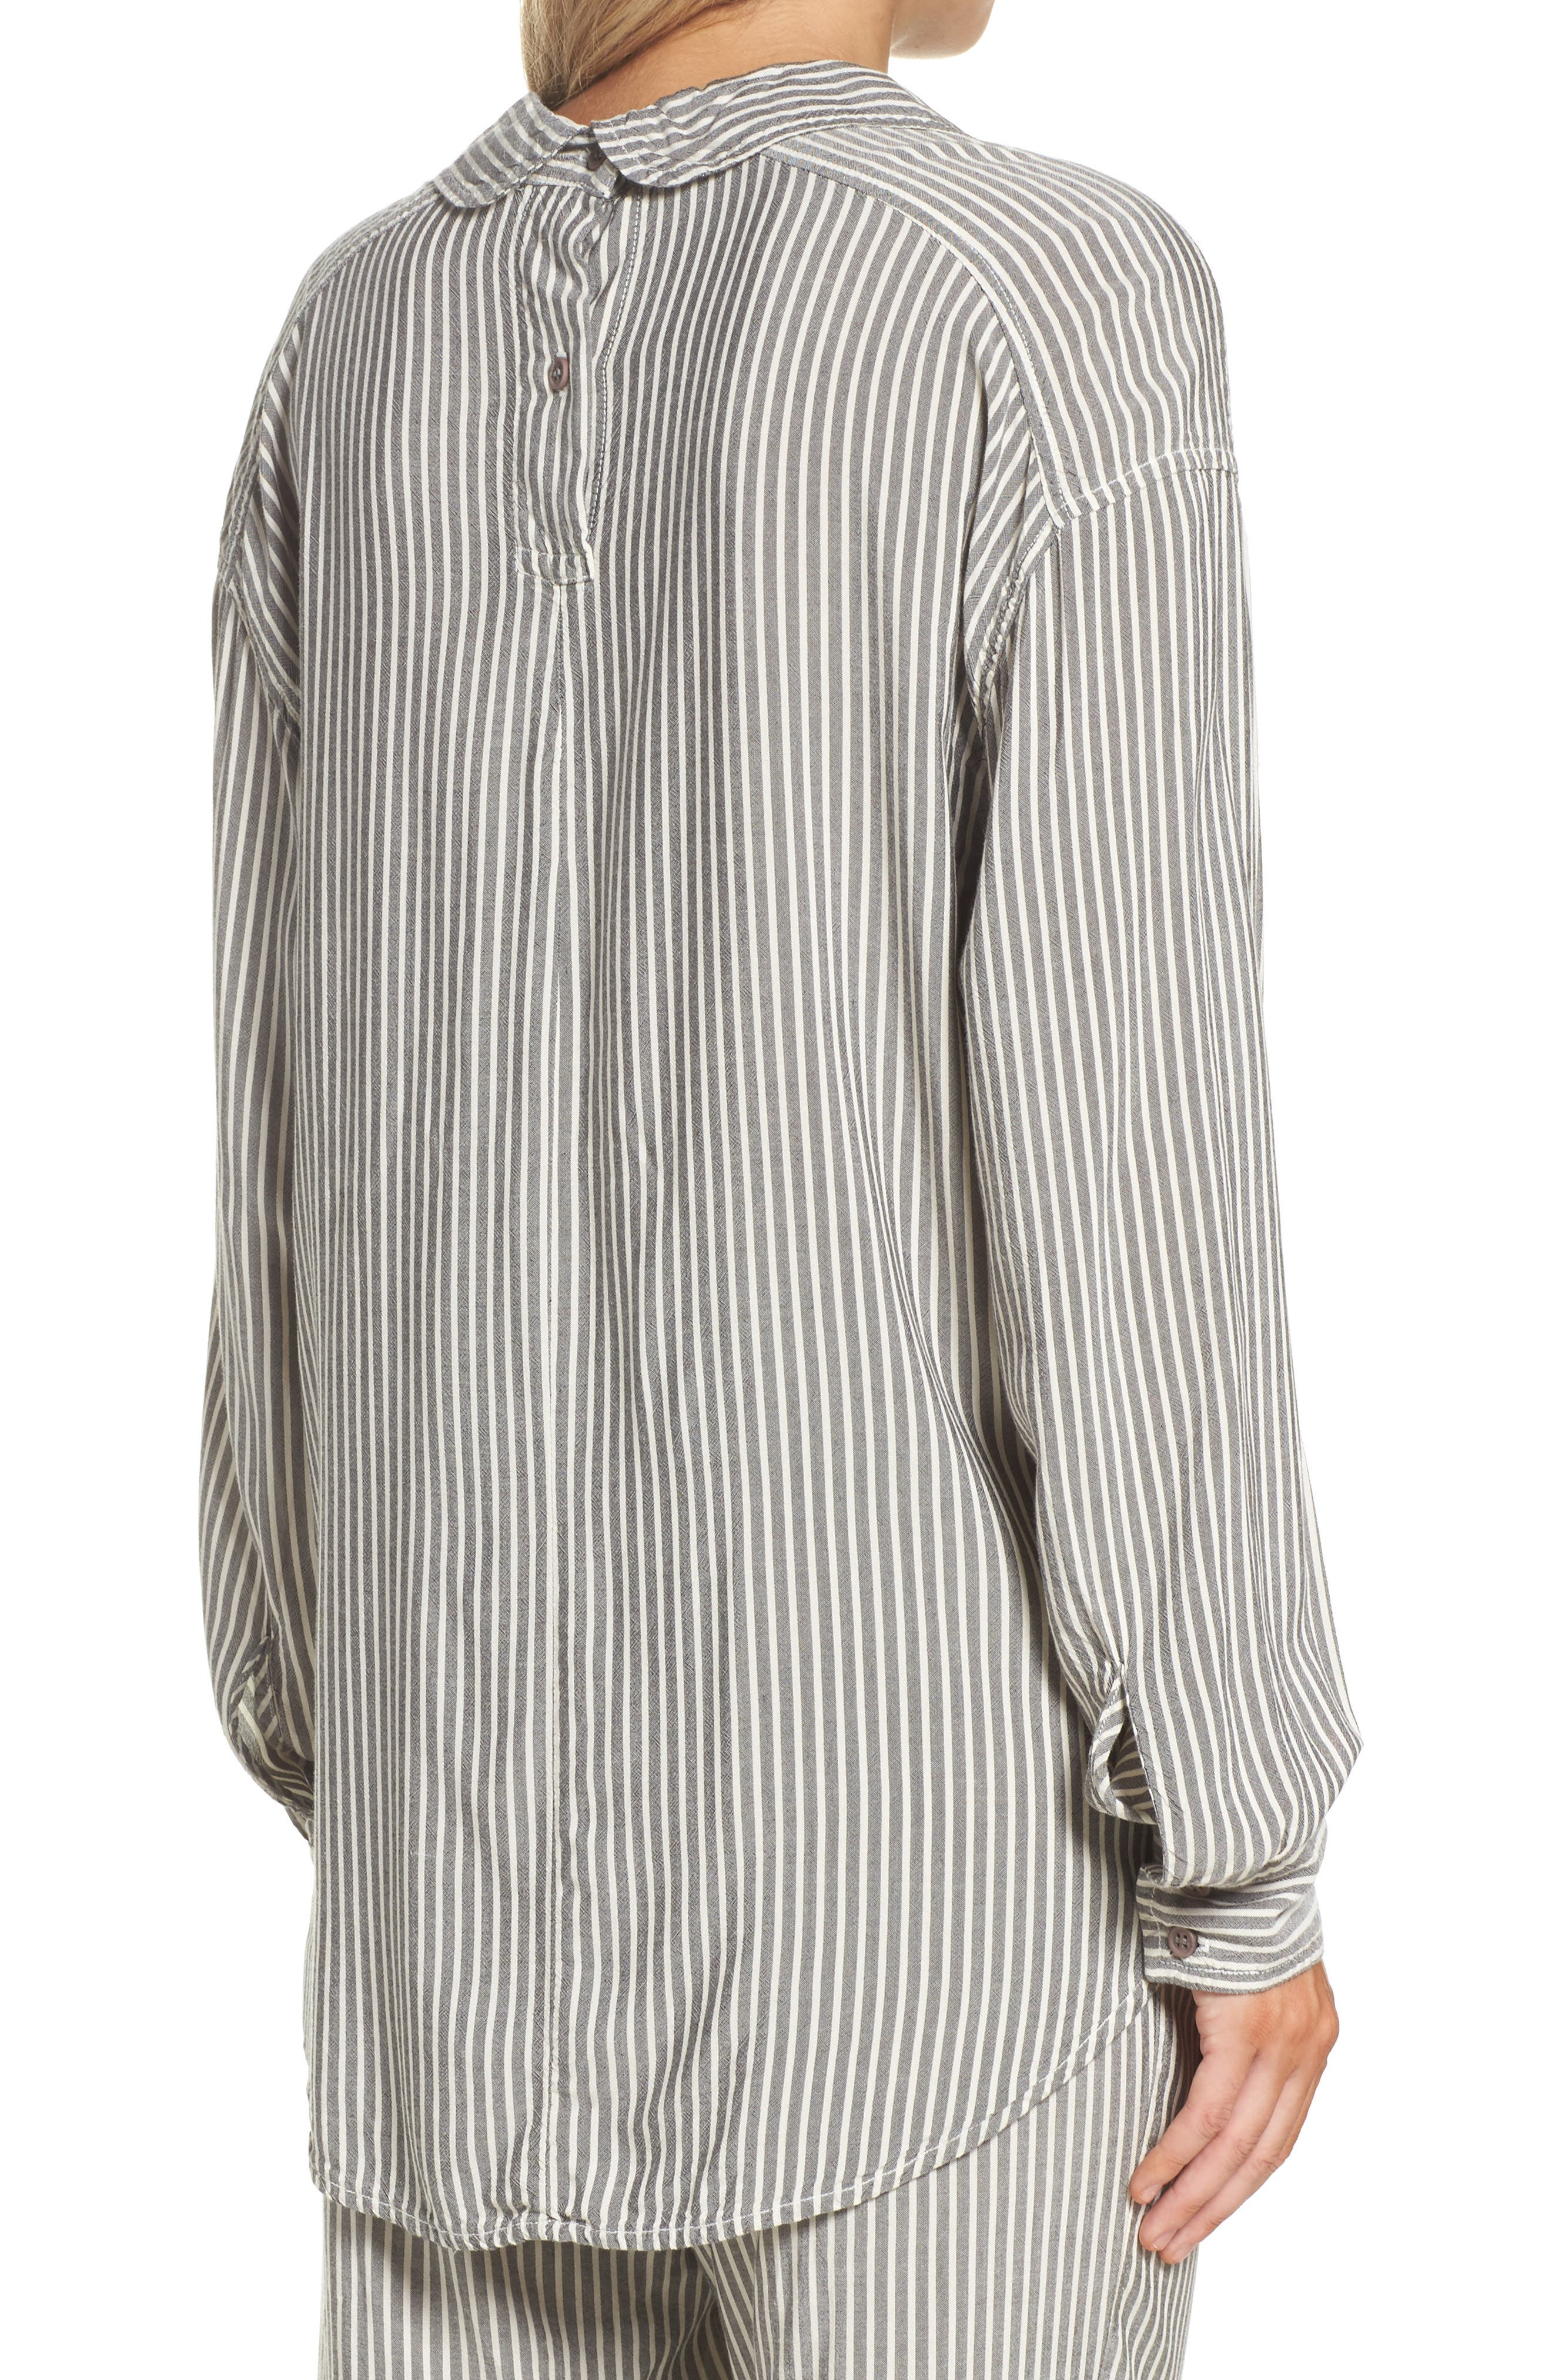 Stripe Top,                             Alternate thumbnail 2, color,                             Grey Stripe